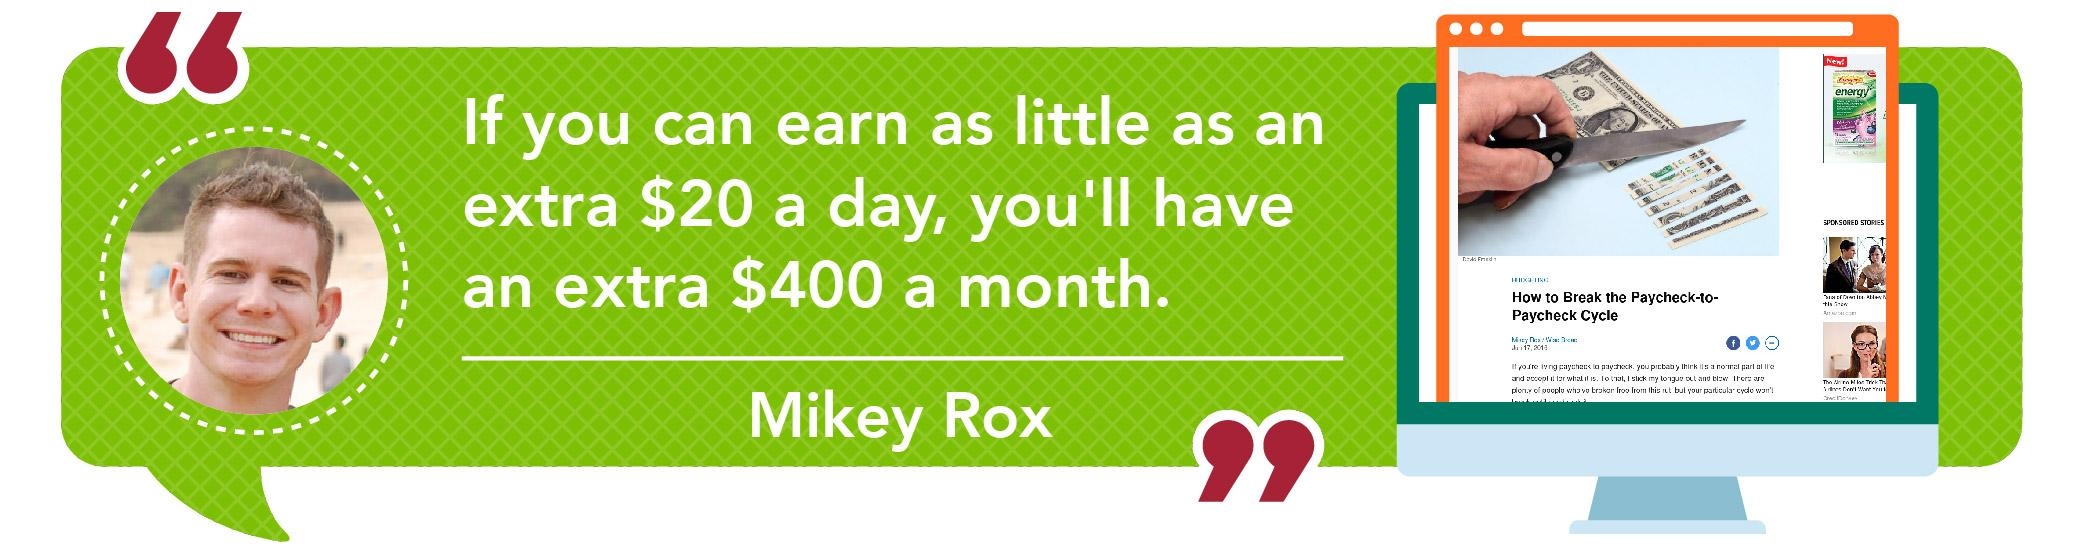 Mike Rox quote